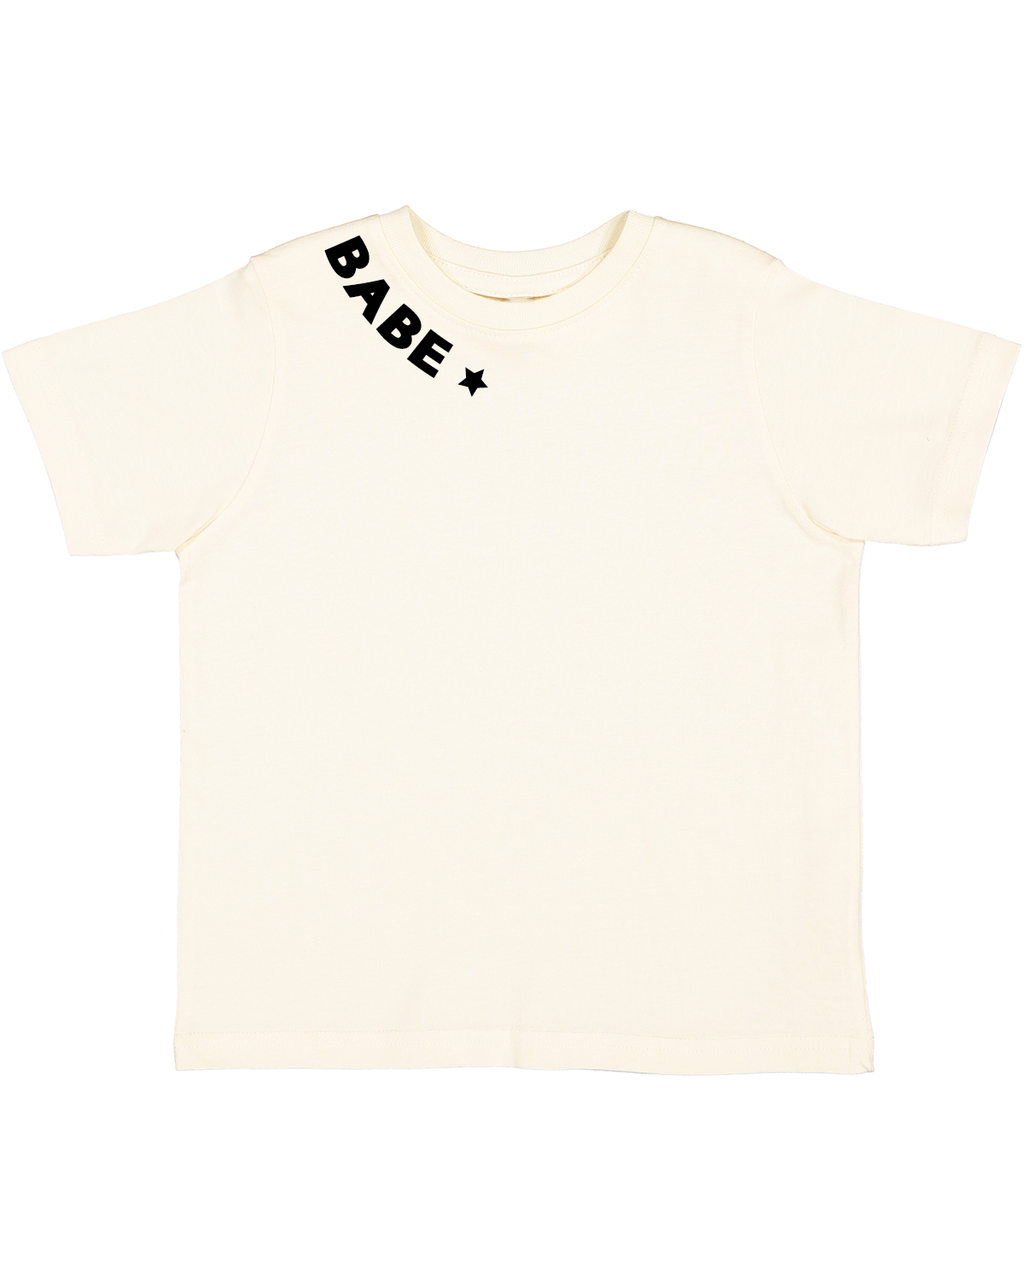 Babe Vintage Washed Tee